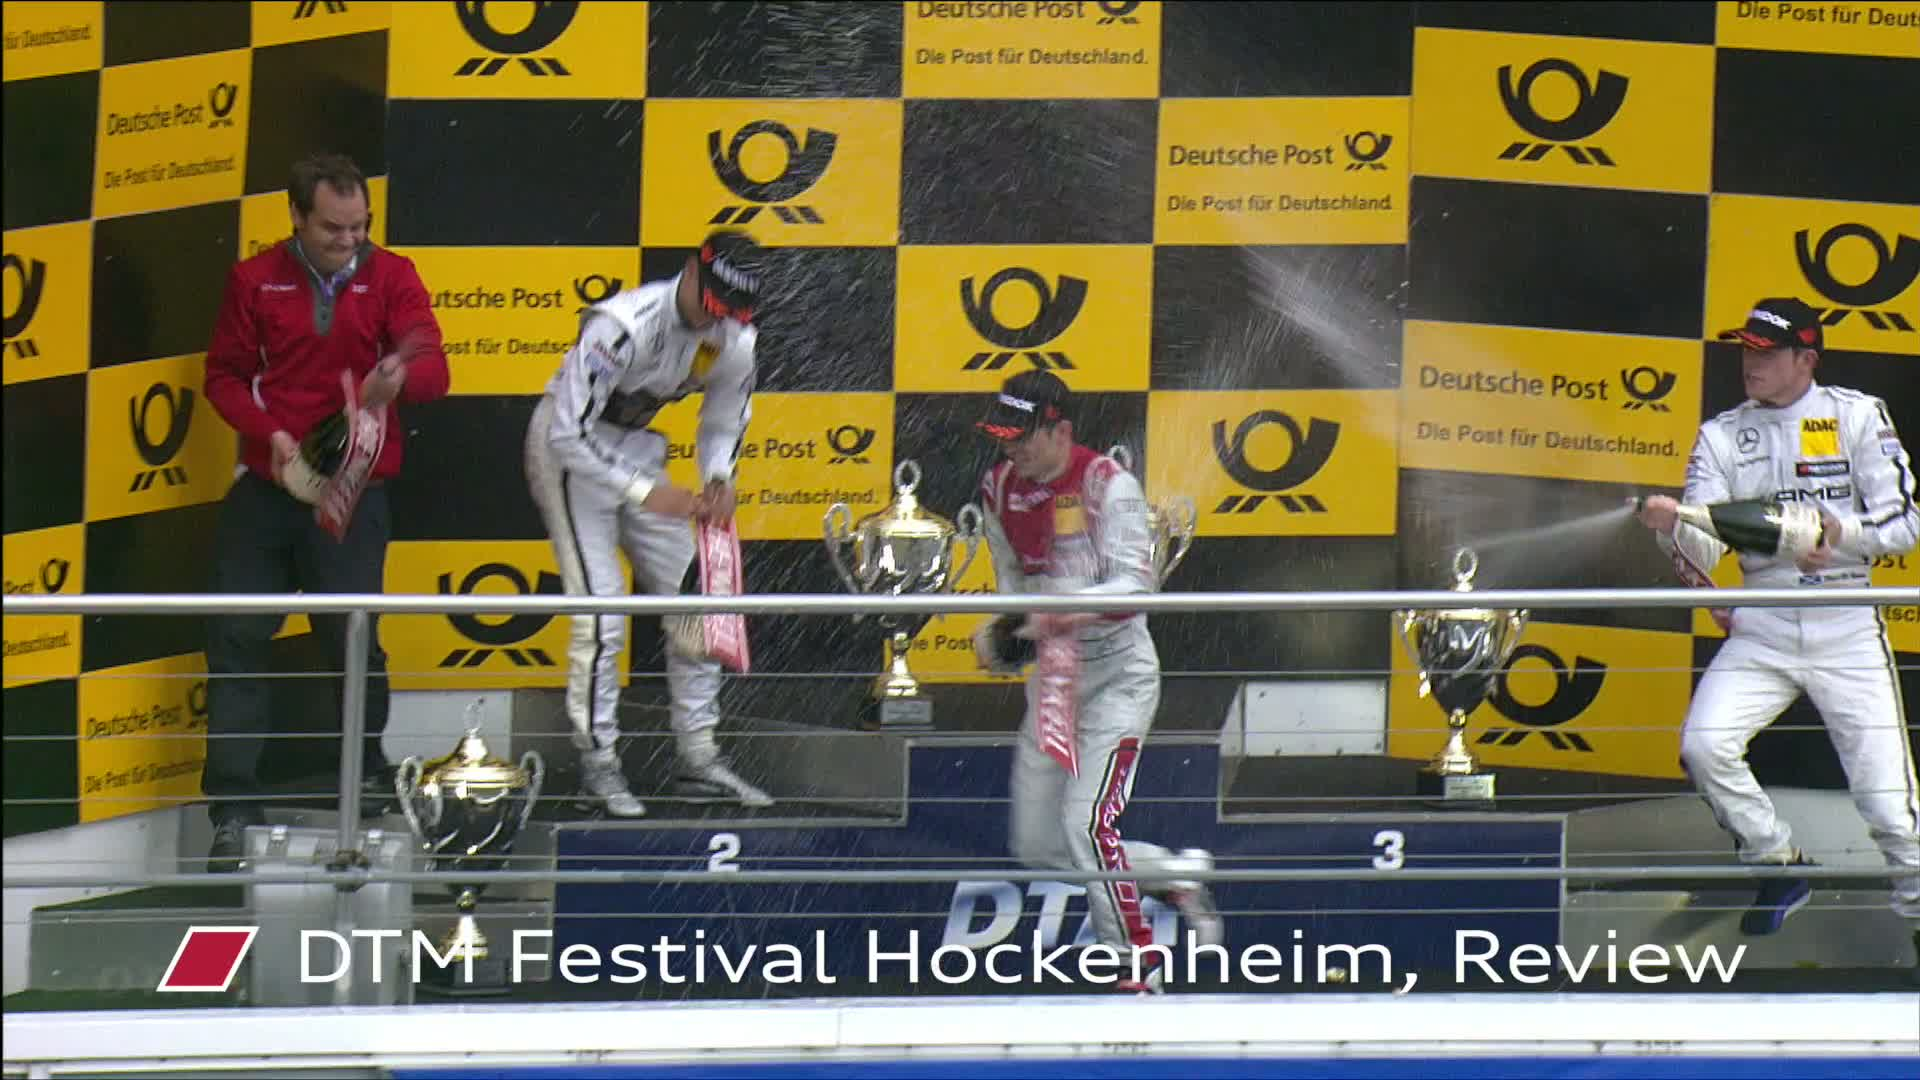 60 Seconds of Audi Sport 22/2015 - DTM Festival Hockenheim, Rückblick